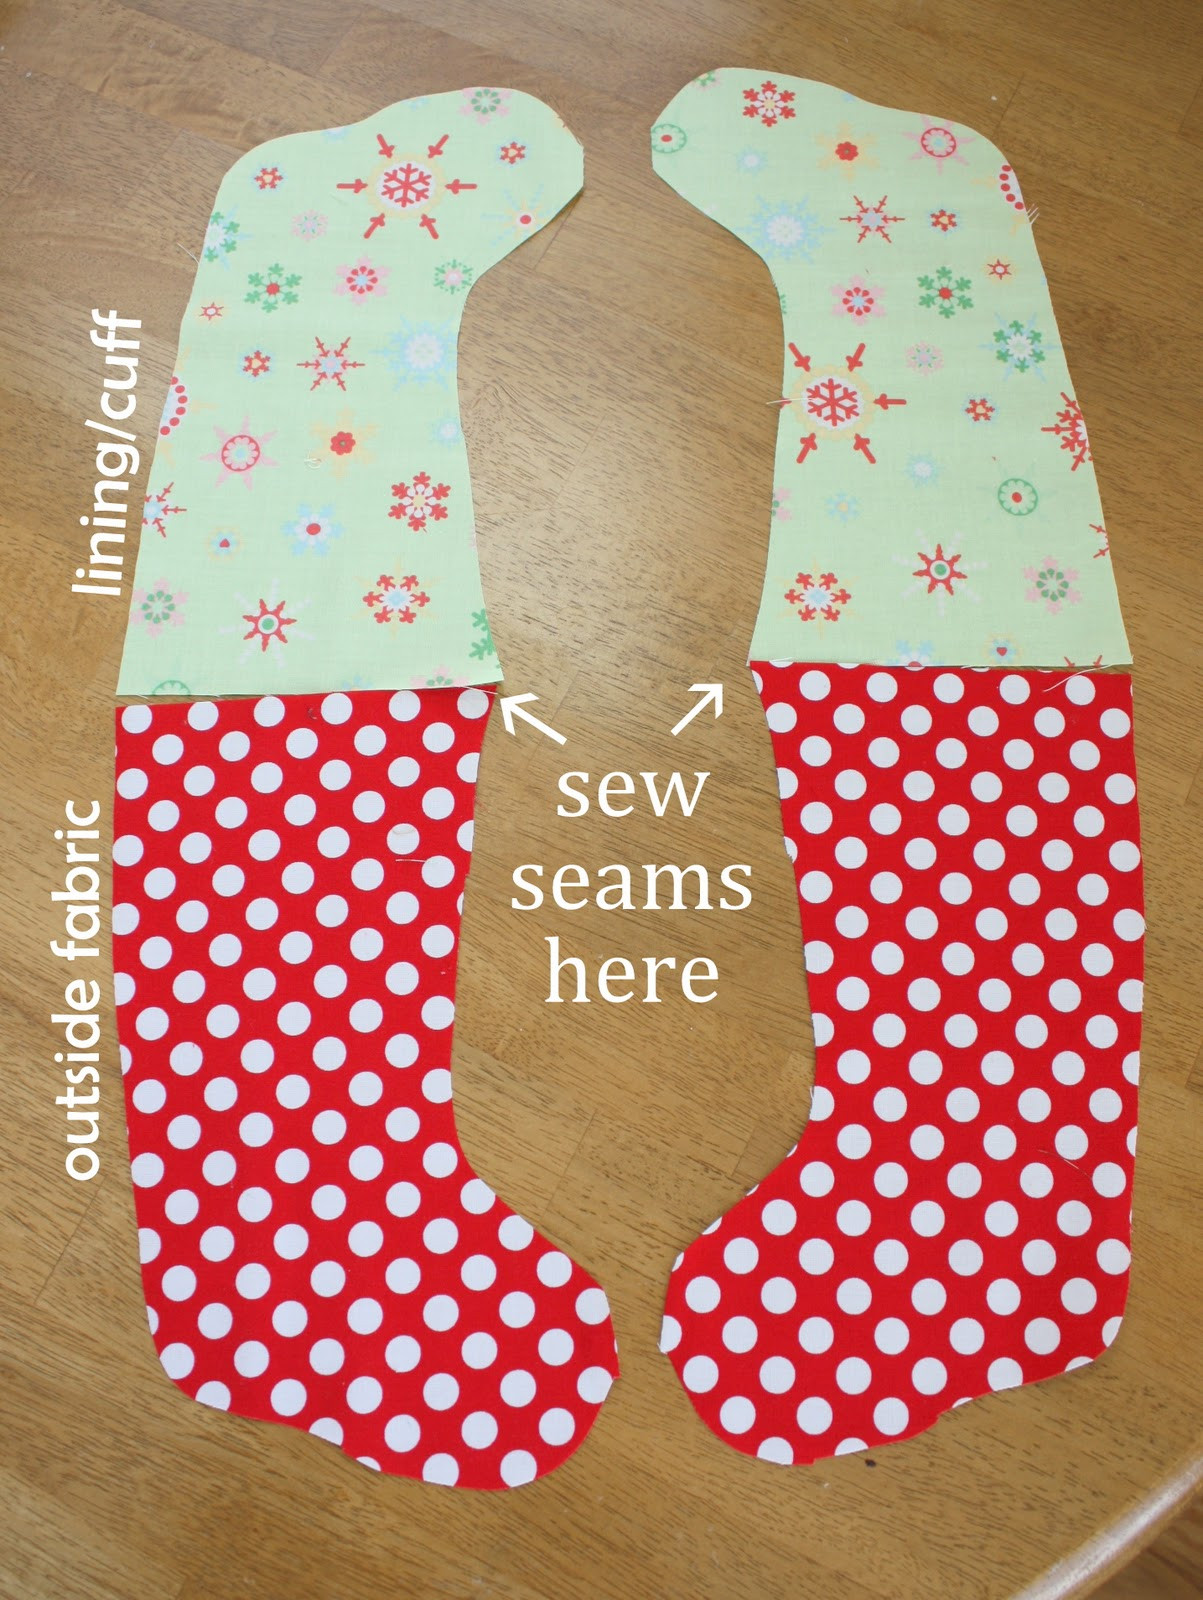 Best ideas about Christmas Stockings DIY . Save or Pin Easy DIY Stocking Tutorial Now.